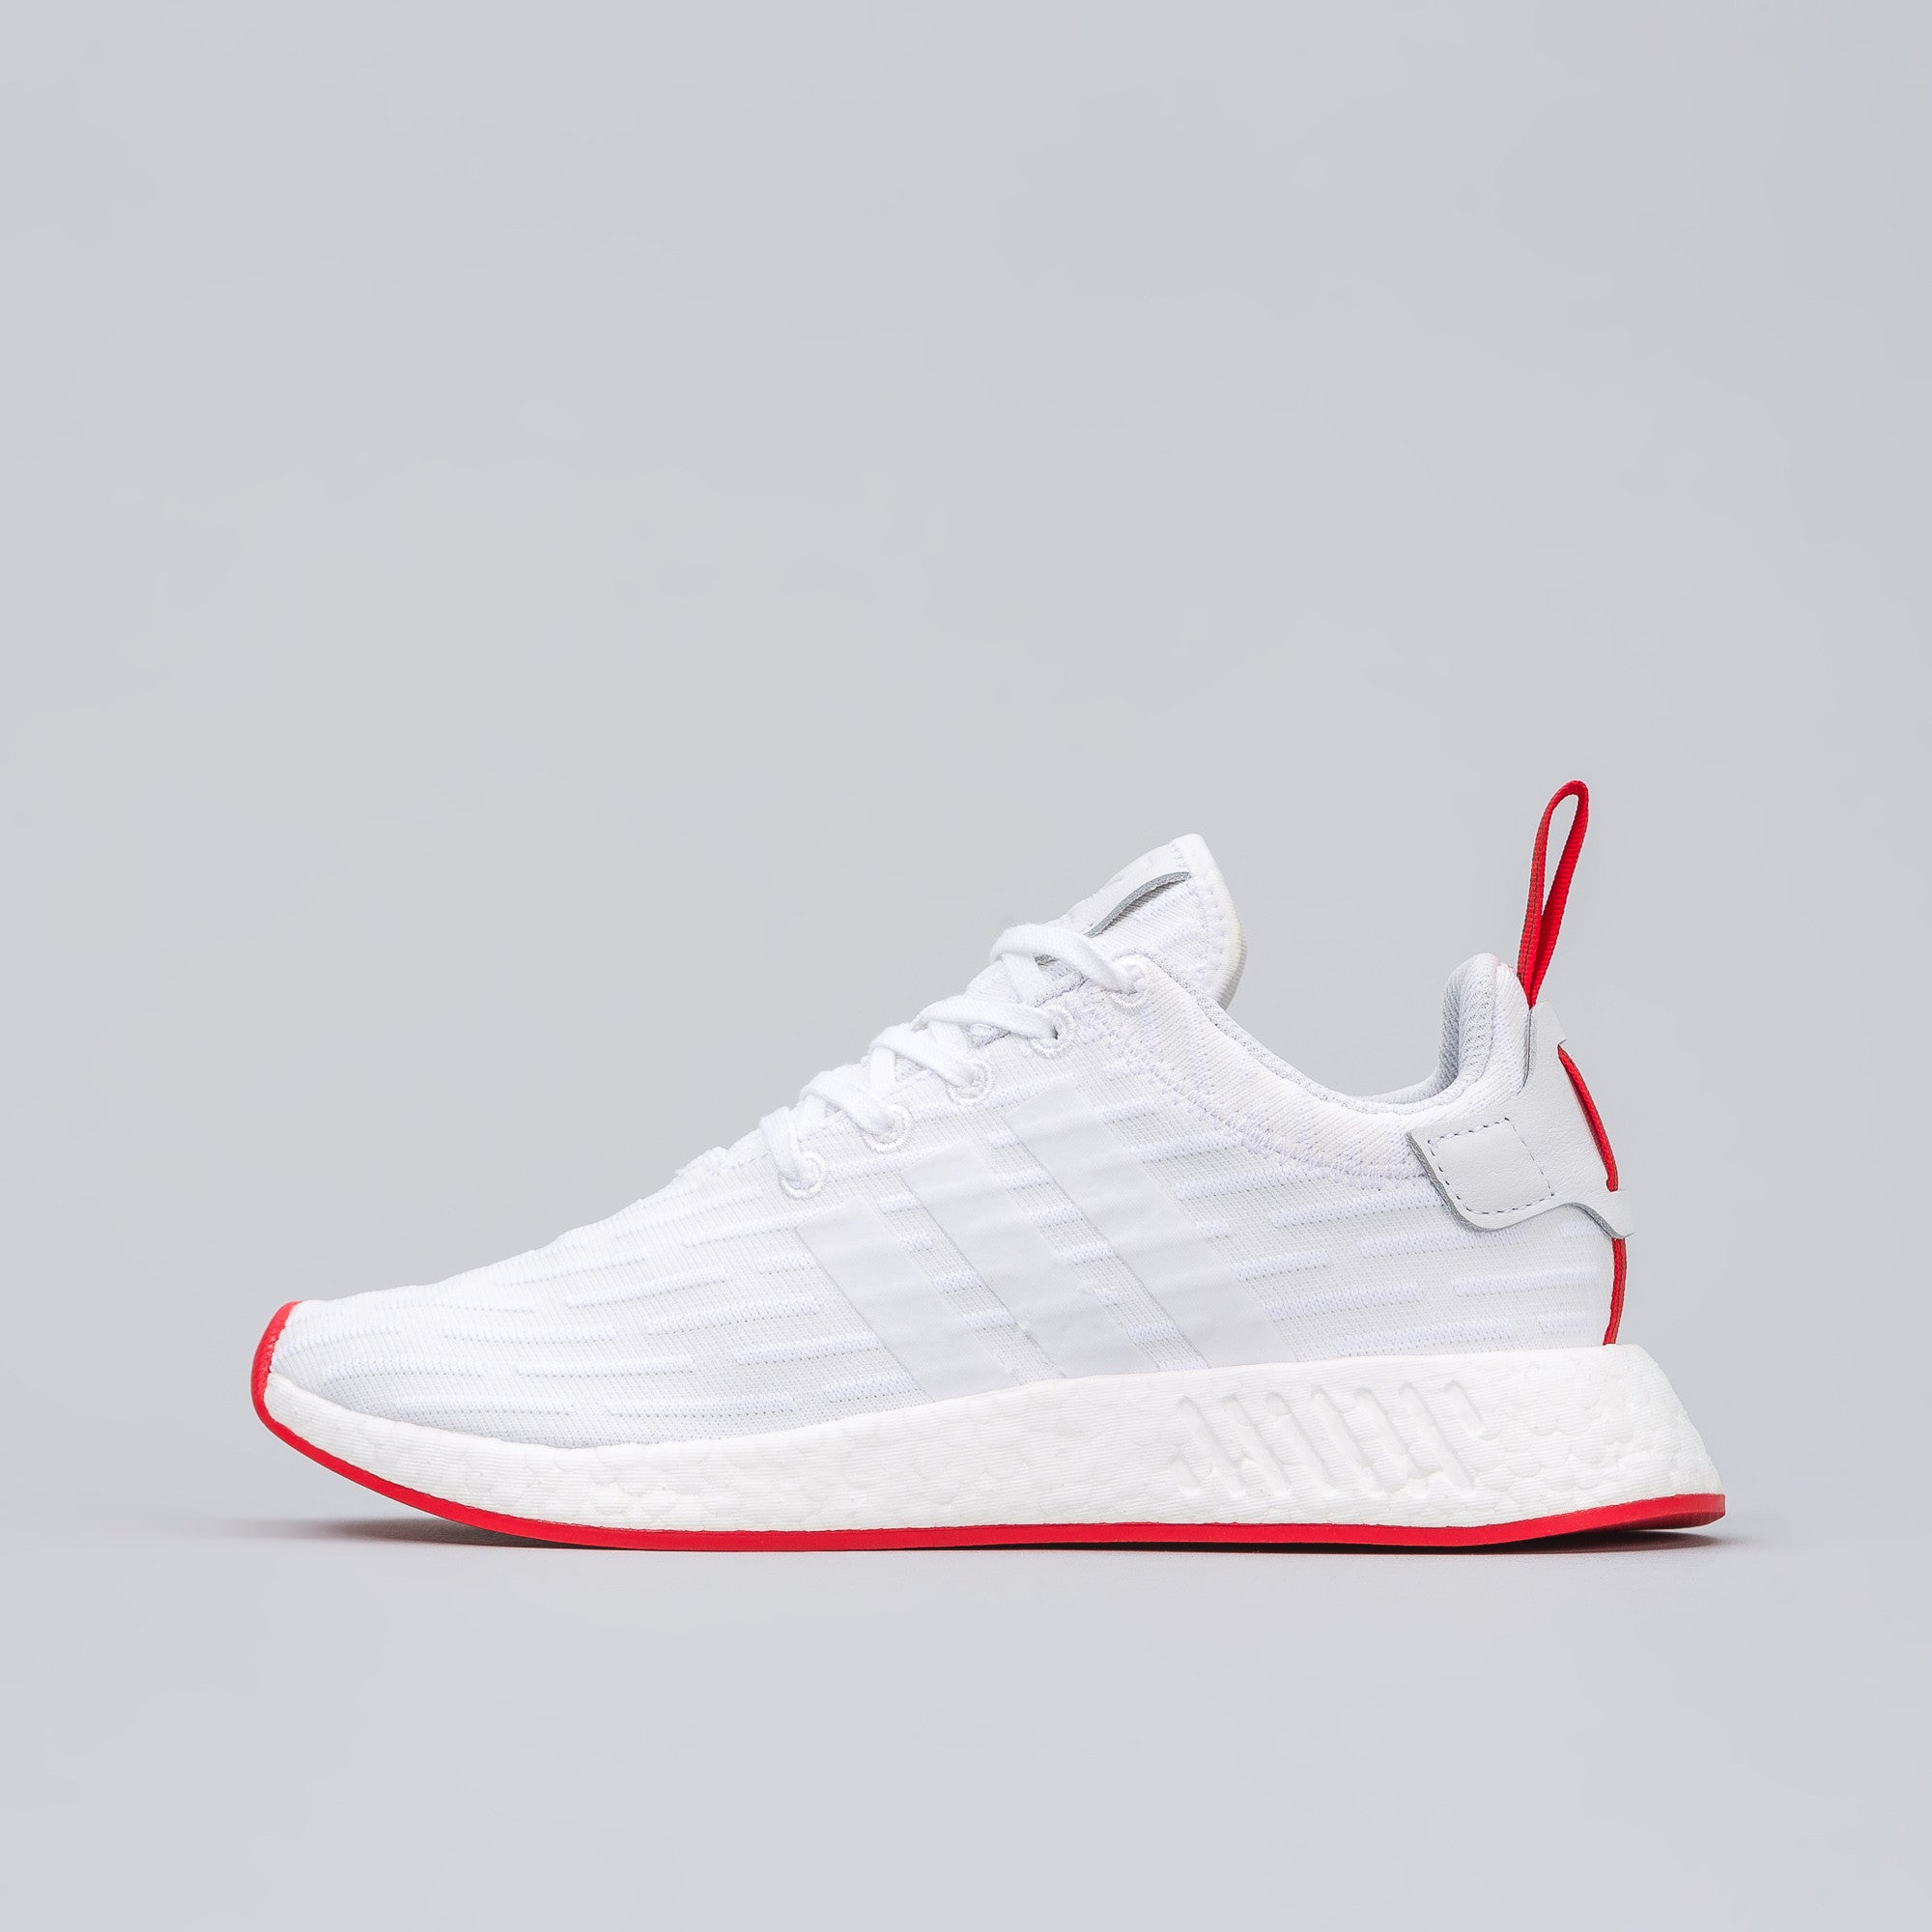 NMD R2 PK in Vntg White